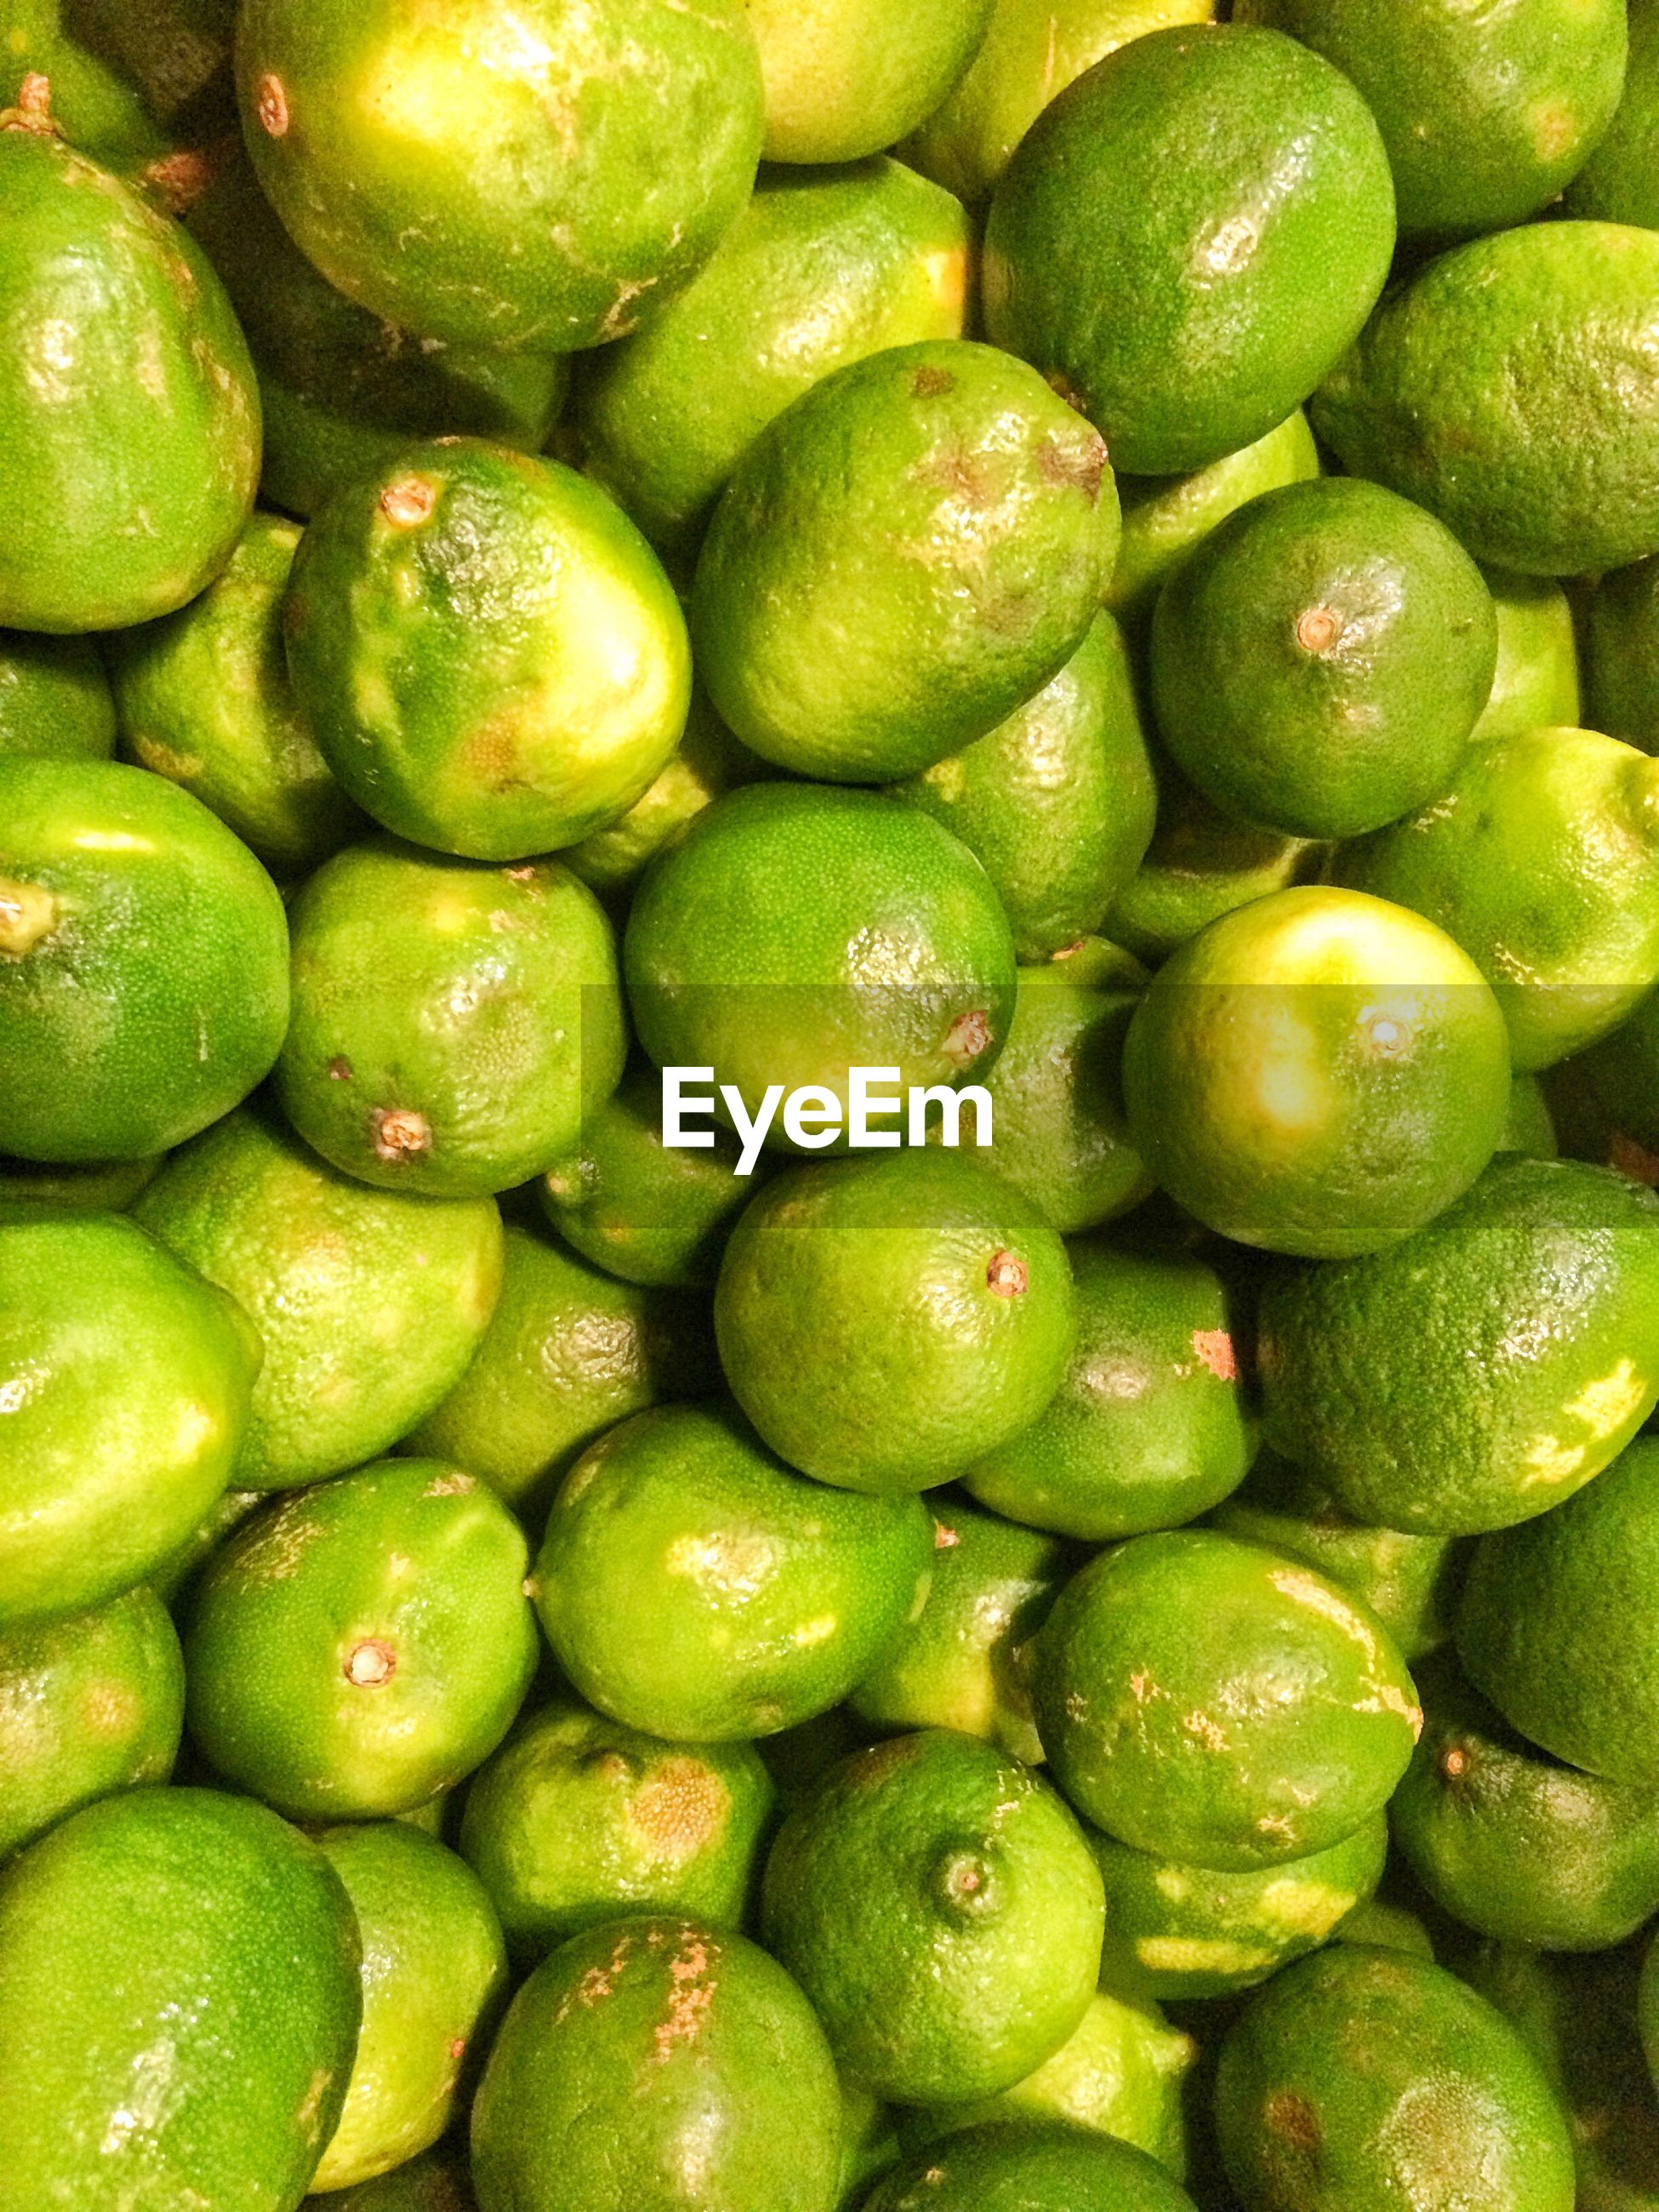 FULL FRAME SHOT OF GREEN FRUITS